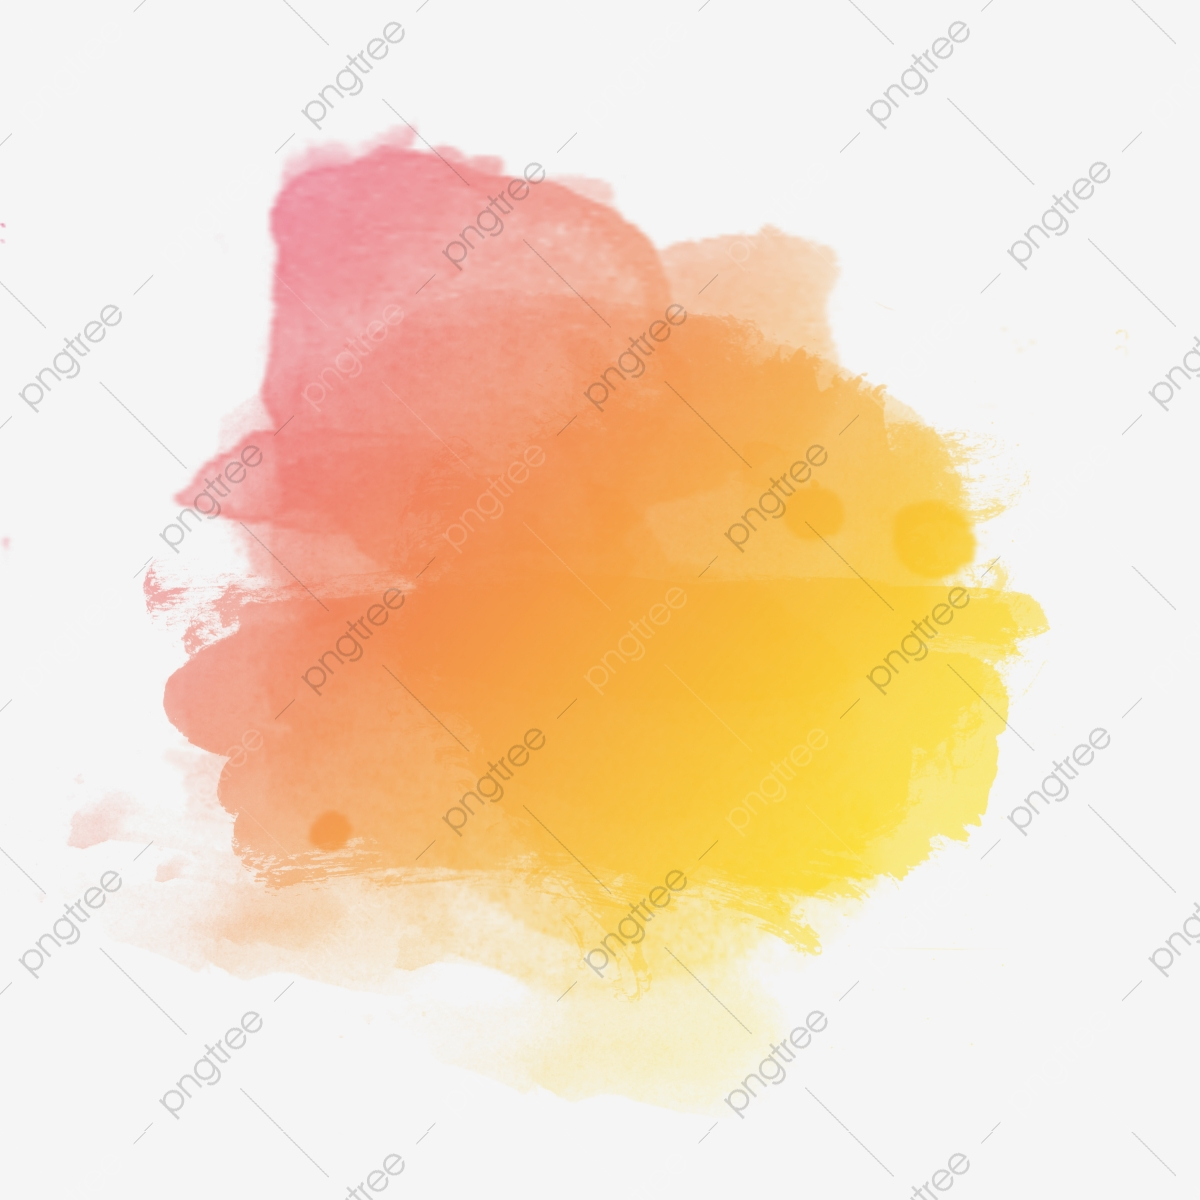 Dumping Watercolor Ink Decoration Decoration Ink Dumping Png Transparent Clipart Image And Psd File For Free Download